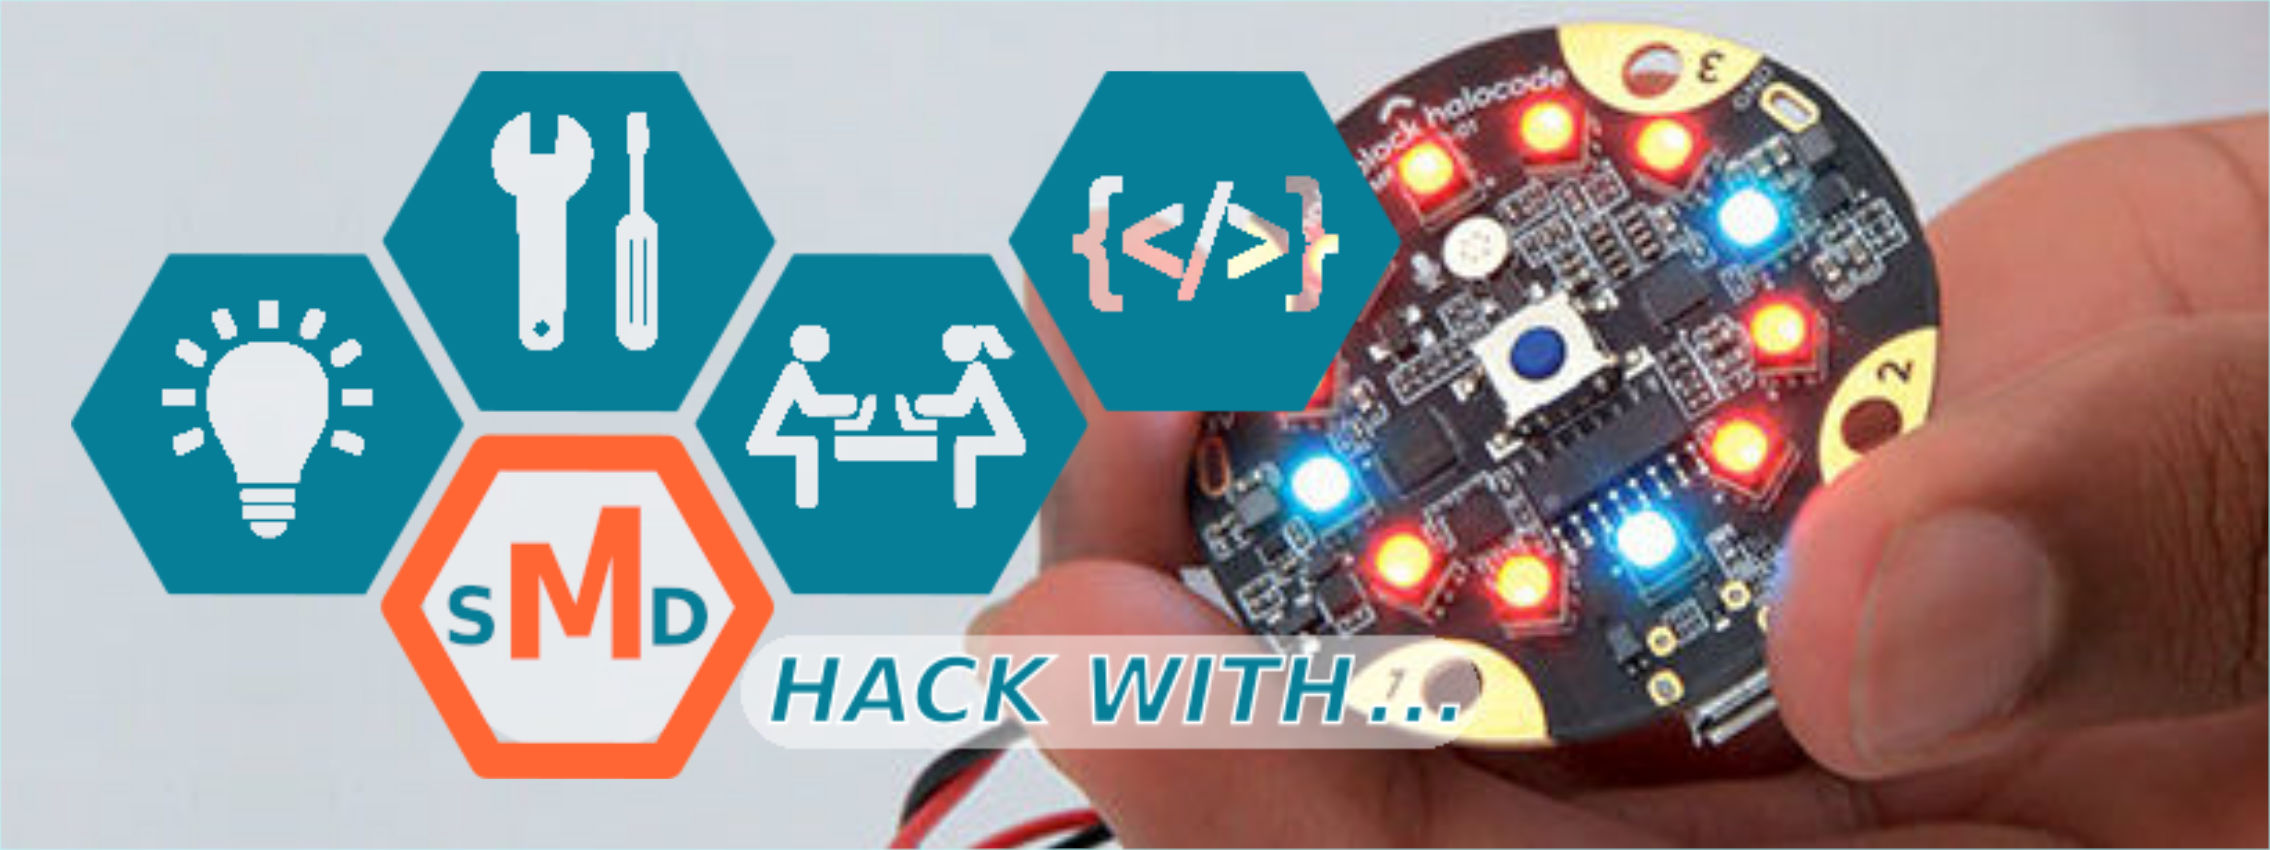 Hack with ... Halocode